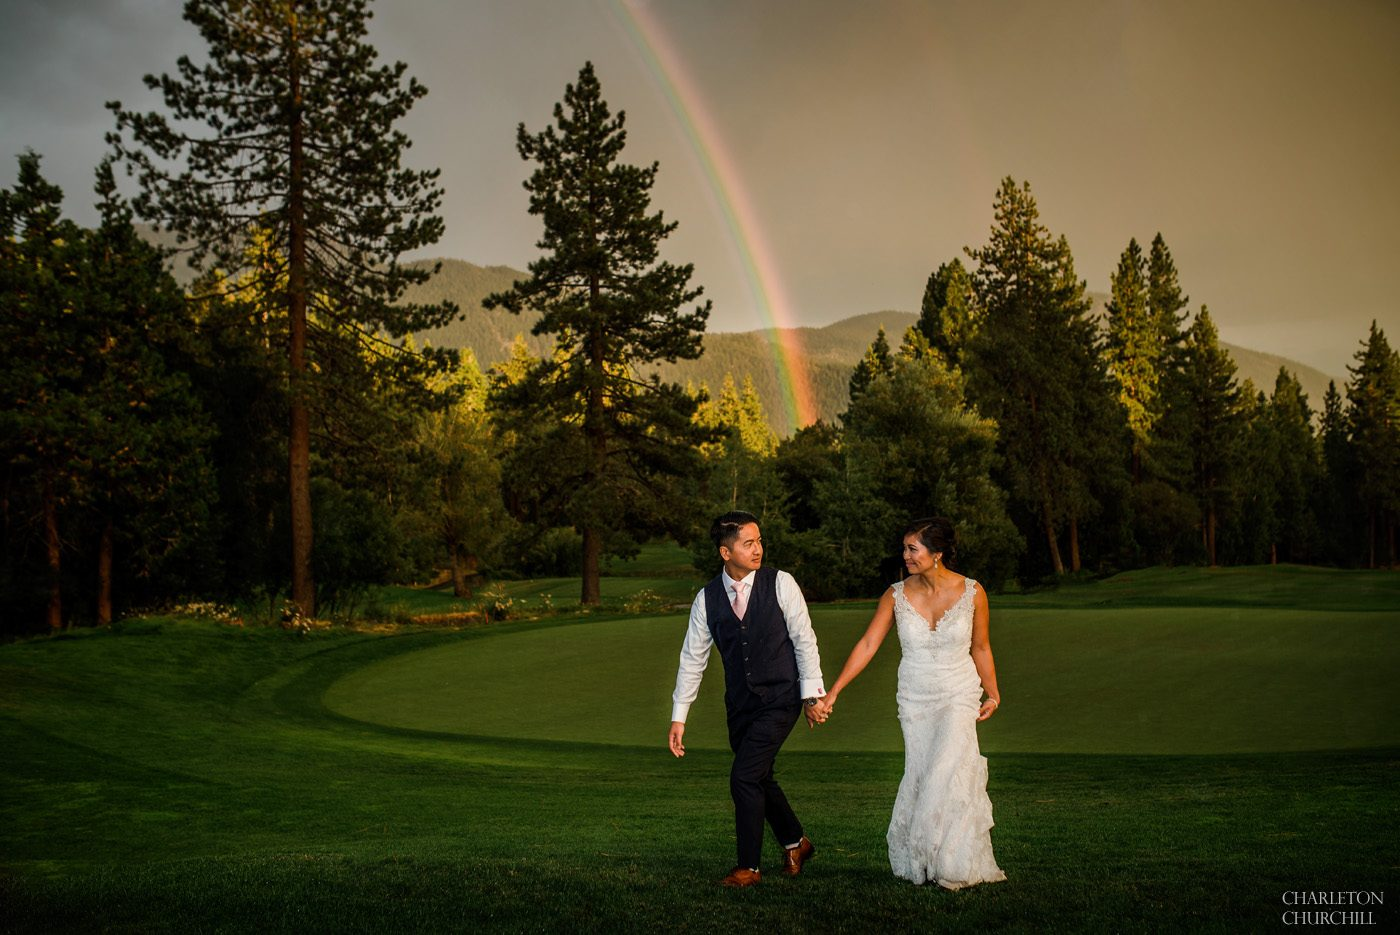 The Chateau incline village wedding venue with couple in tahoe during rainbow north lake